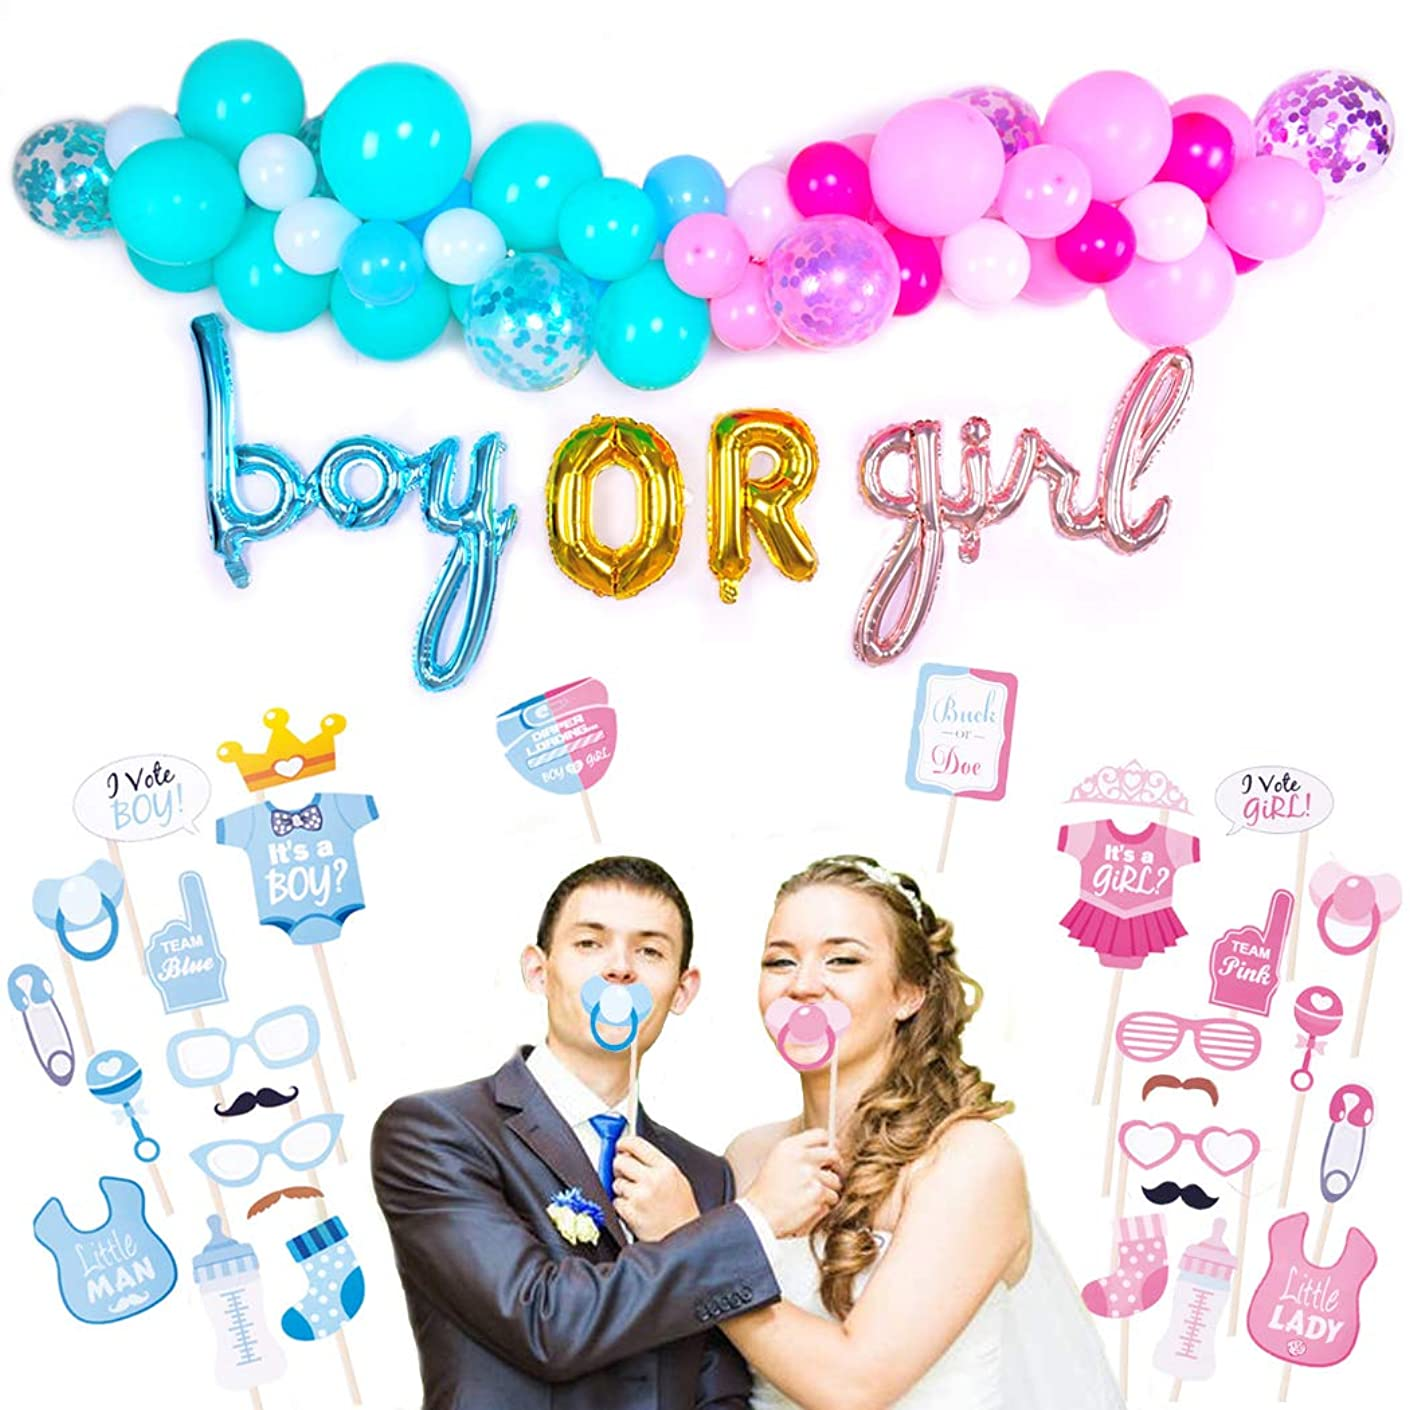 Gender Reveal Party Supplies Pink Blue Confetti Balloon Chain Balloon Tying Tool Boy or Girl Foil Banner Decorations, Photo Booth Props